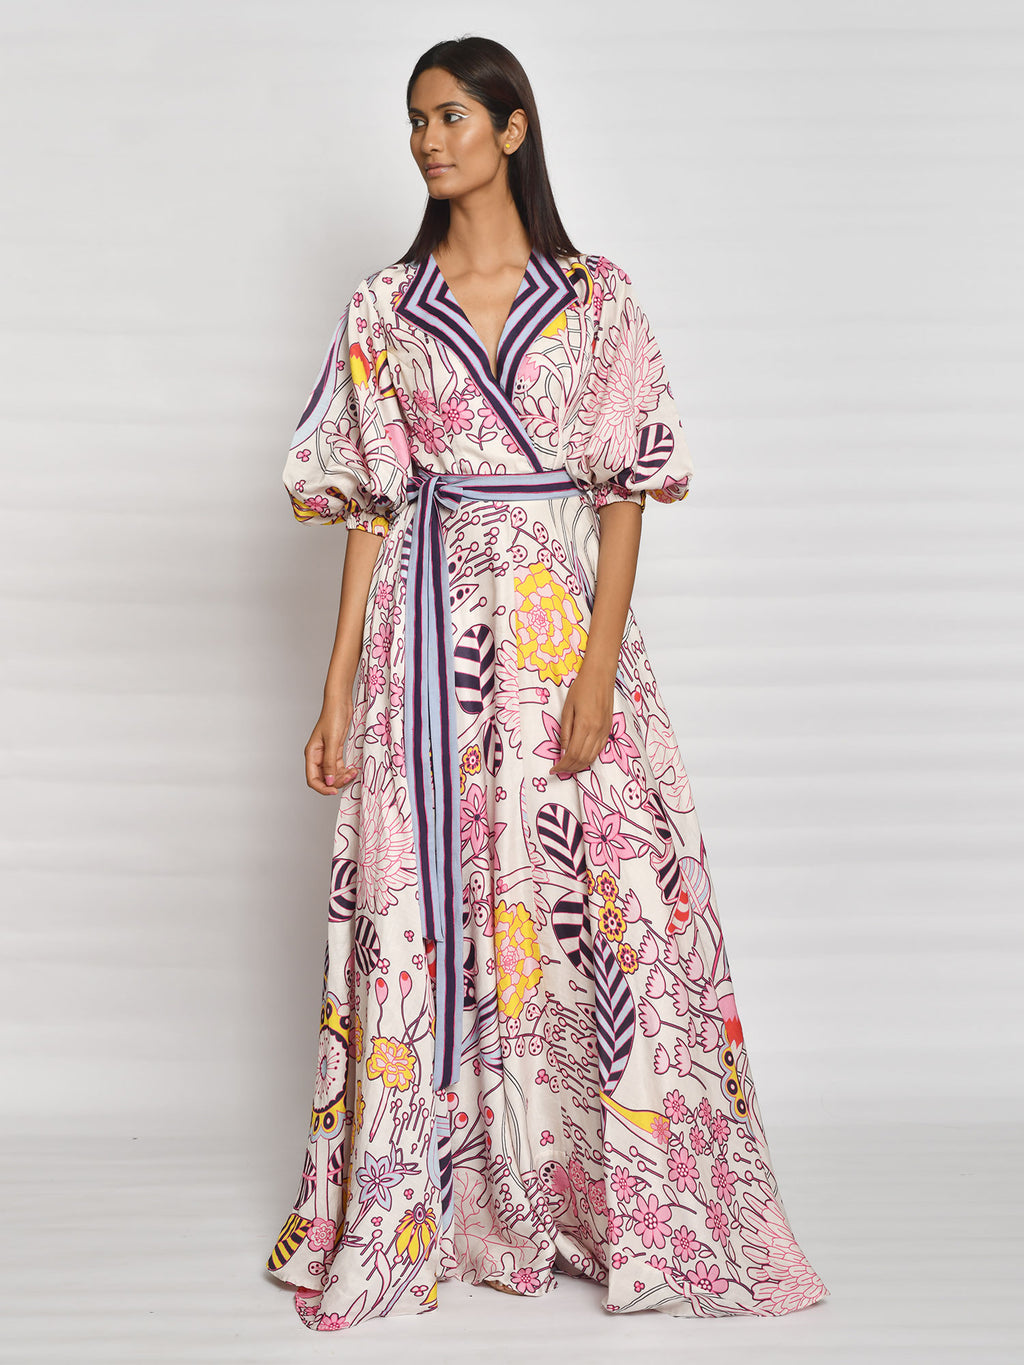 dress, longdress, maxis, maxidress, printeddress, prints, style, inbloom, swativijaivargie